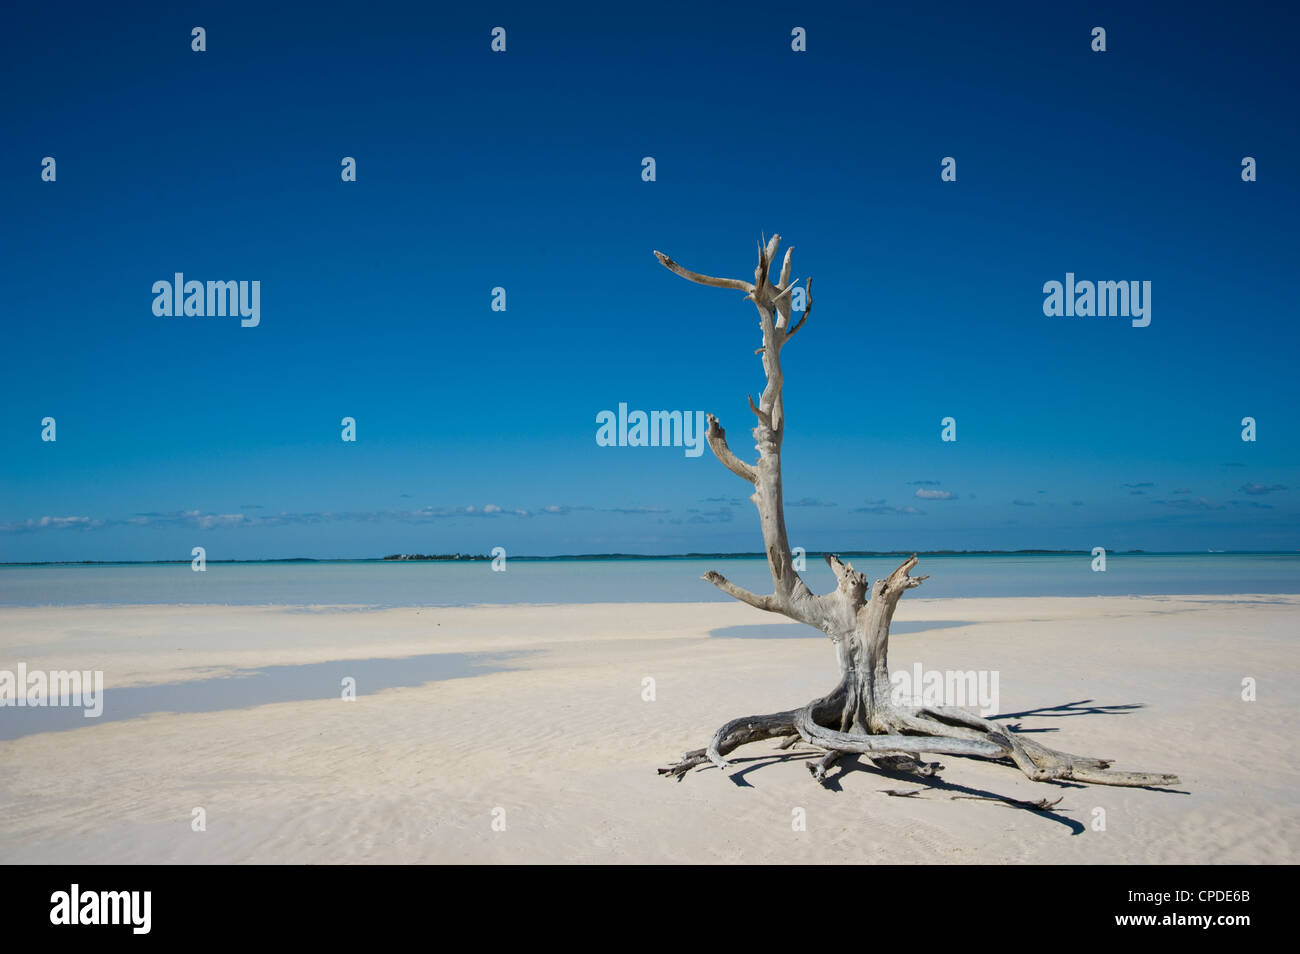 A driftwood tree in the water near Harbour Island, Eleuthera, The Bahamas, West Indies, Atlantic, Central America - Stock Image